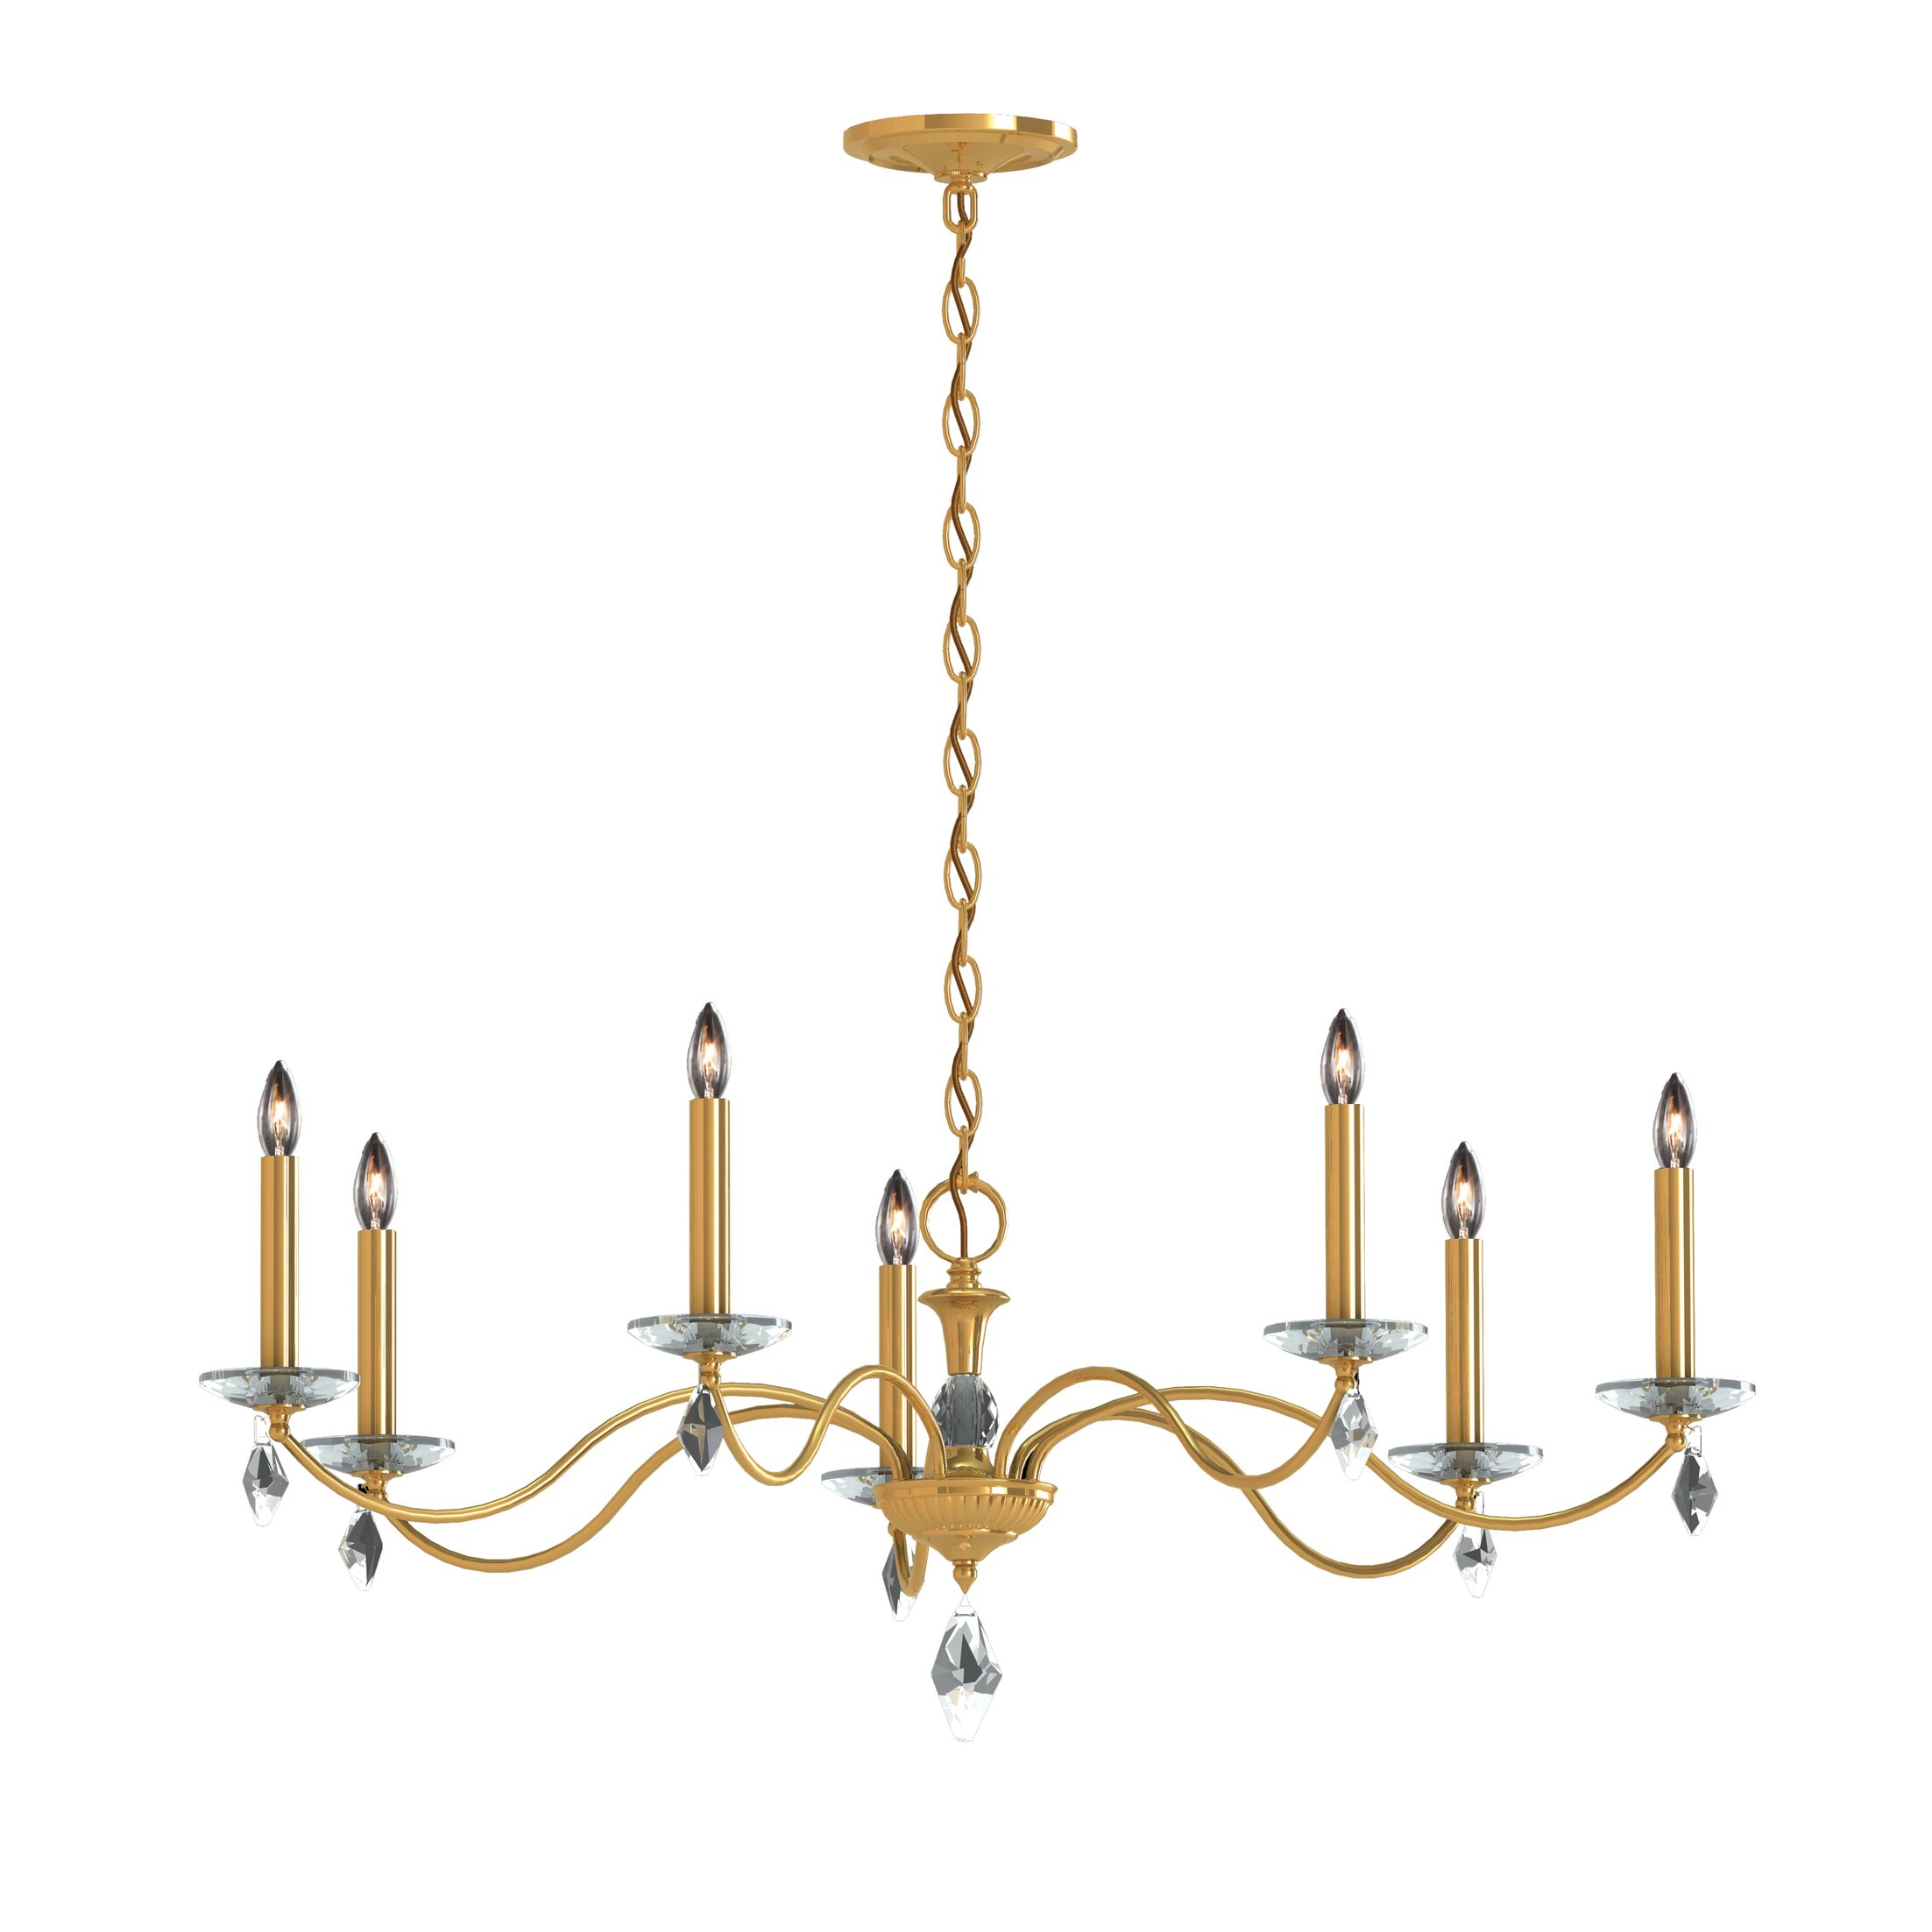 Modique 7-Light Chandelier Crystal Grade: Heritage, Finish: Aurelia